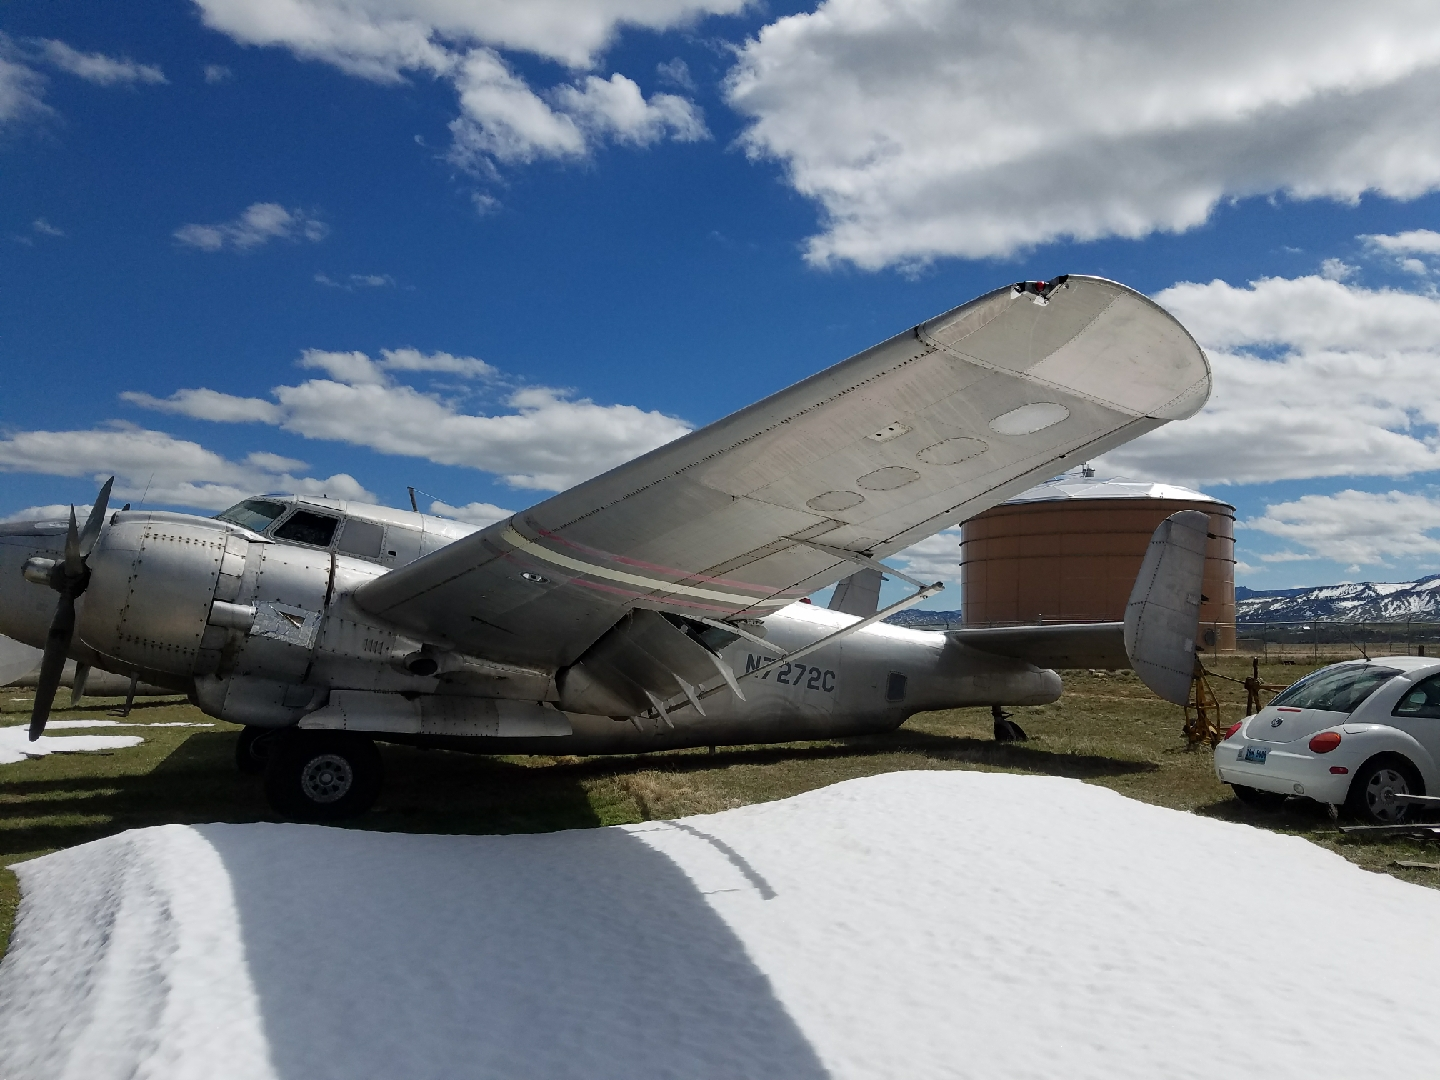 Another view of the Vintage Aviation Museum's newly acquired PV-2 Harpoon where she sits awaiting her move to Salt Lake City, Utah. (photo via Vintage Aviation Museum)